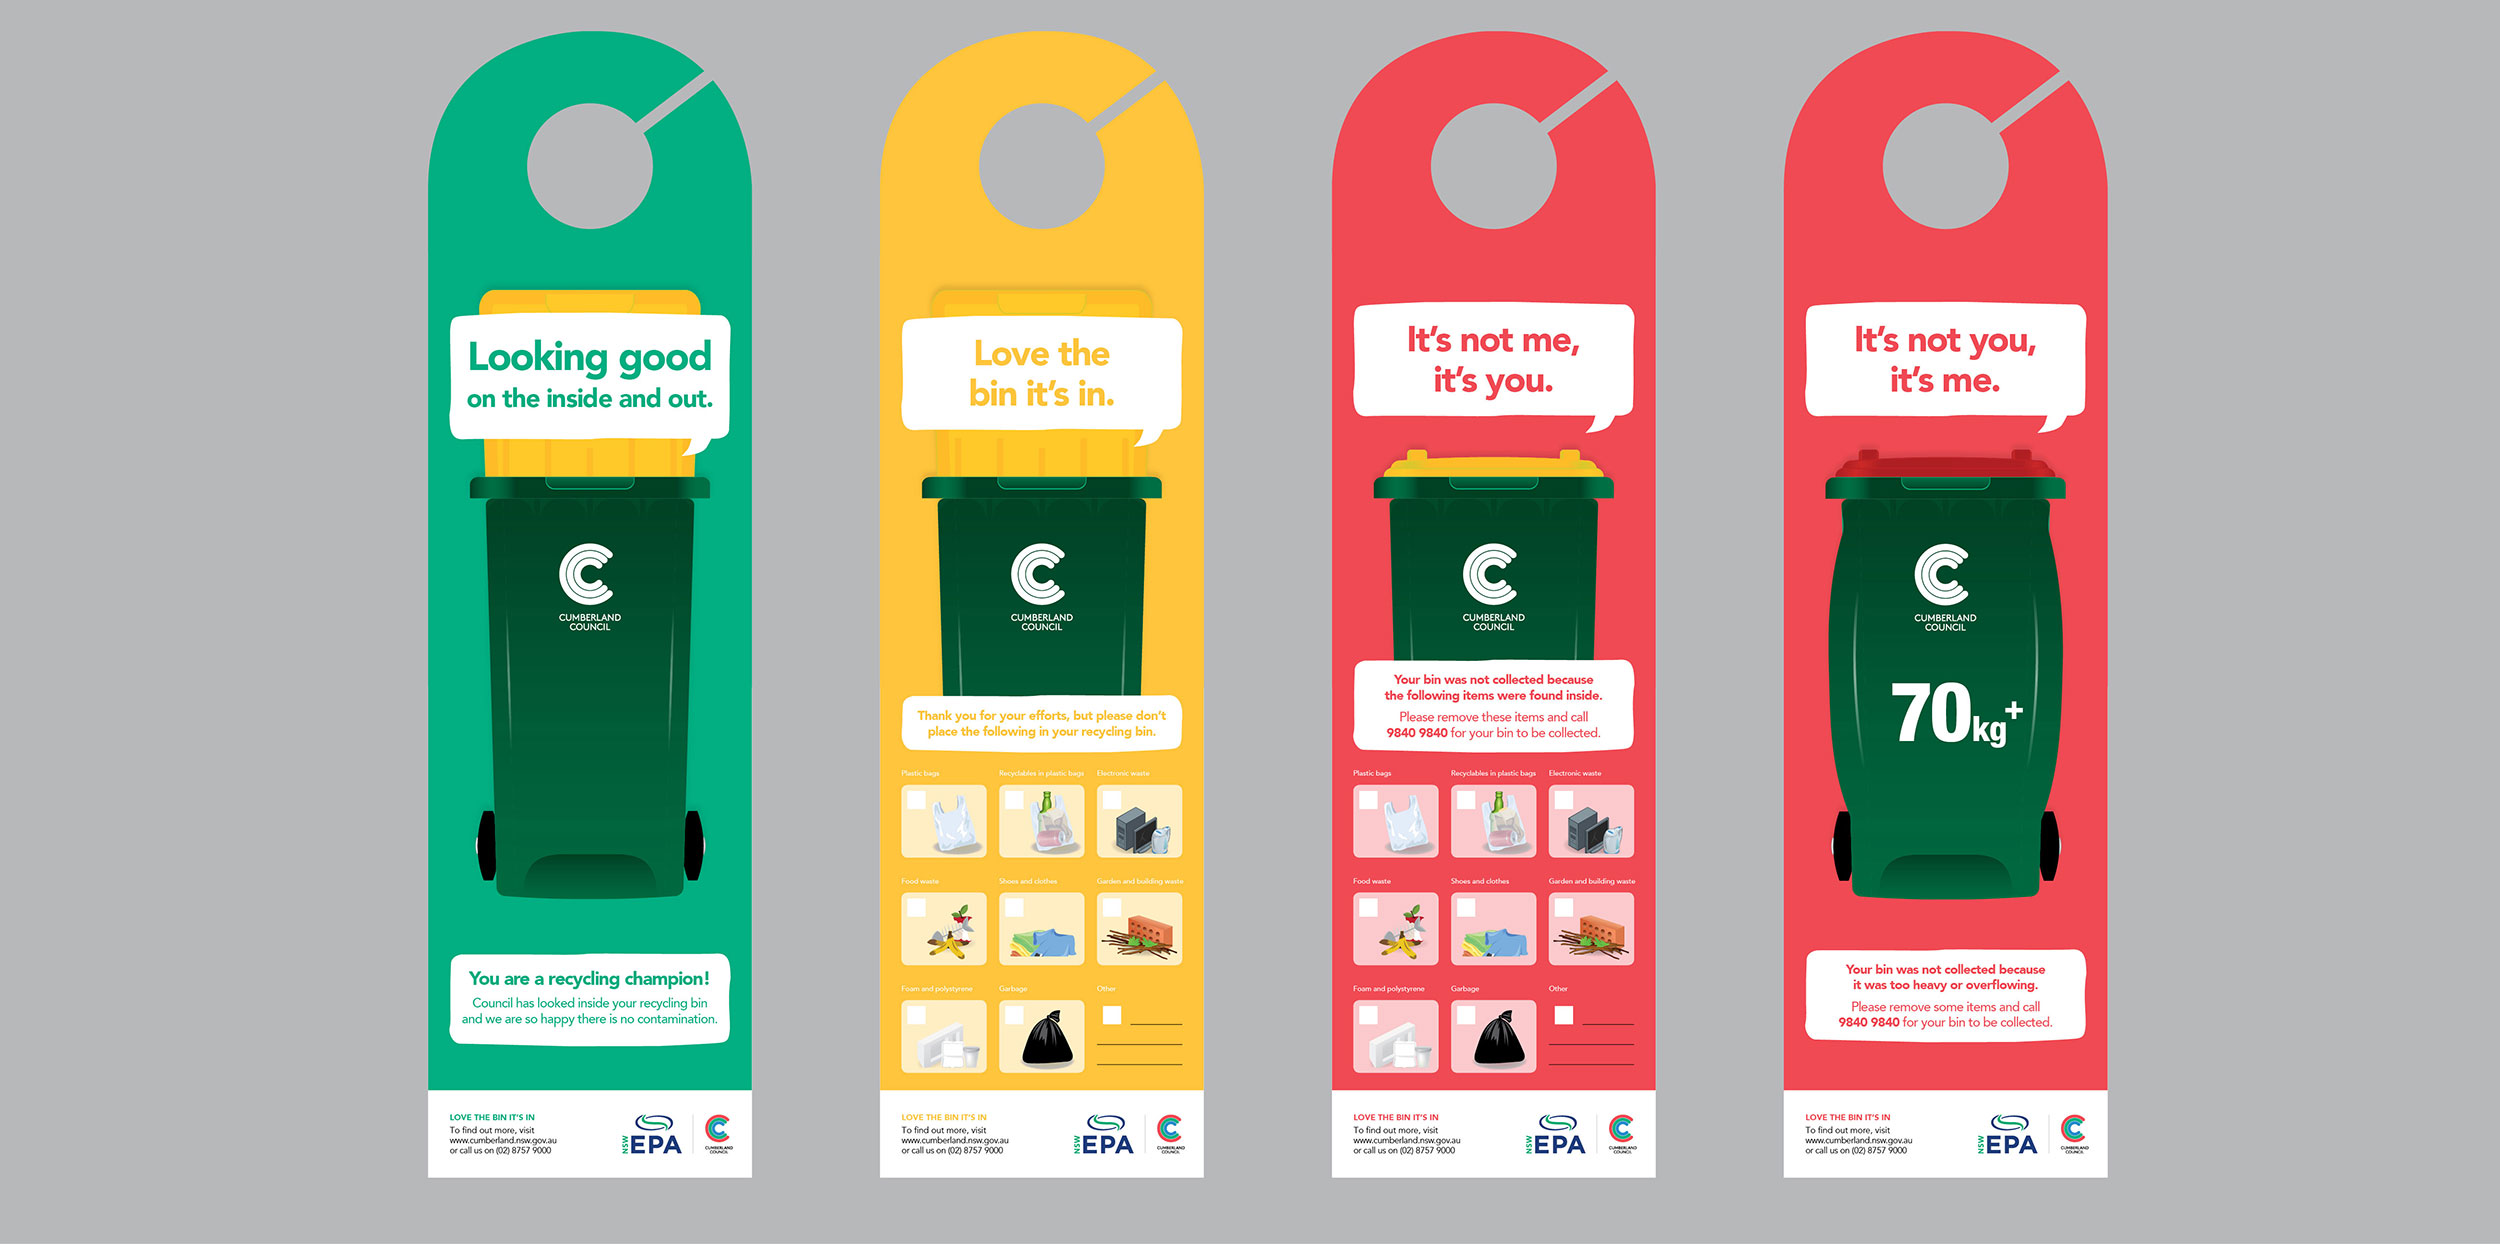 Handle-Branding-Cumberland-Council-NSW-Government-Waste-Education-Resources-Design_17.jpg